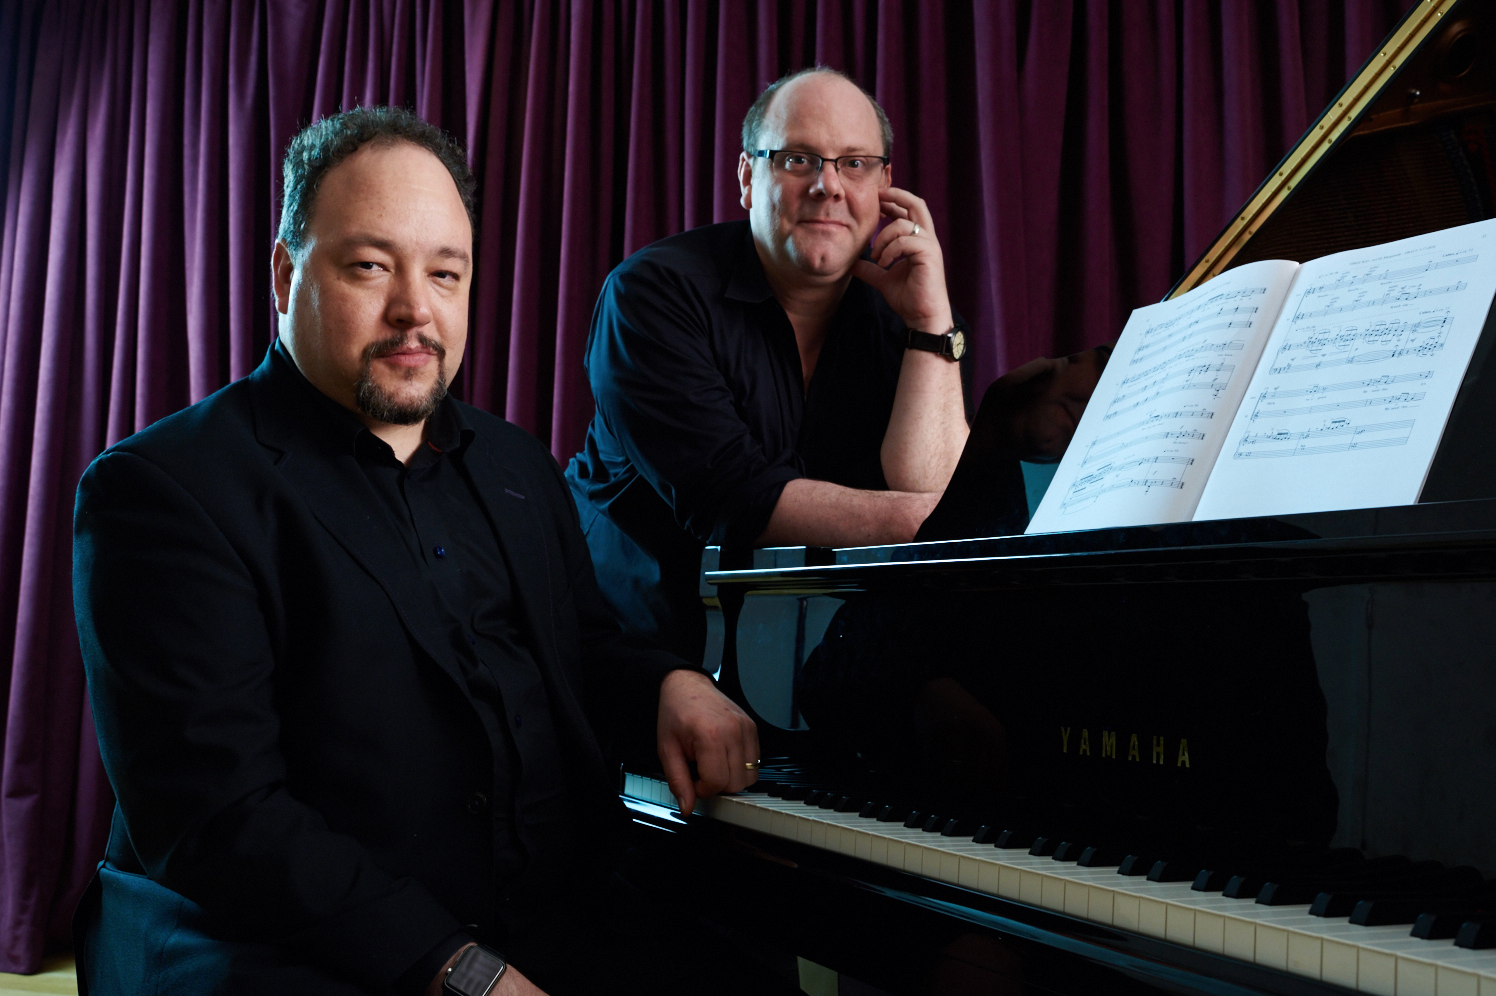 Click here to meet the composer and librettist of THREE WAY, Robert Paterson and David Cote.